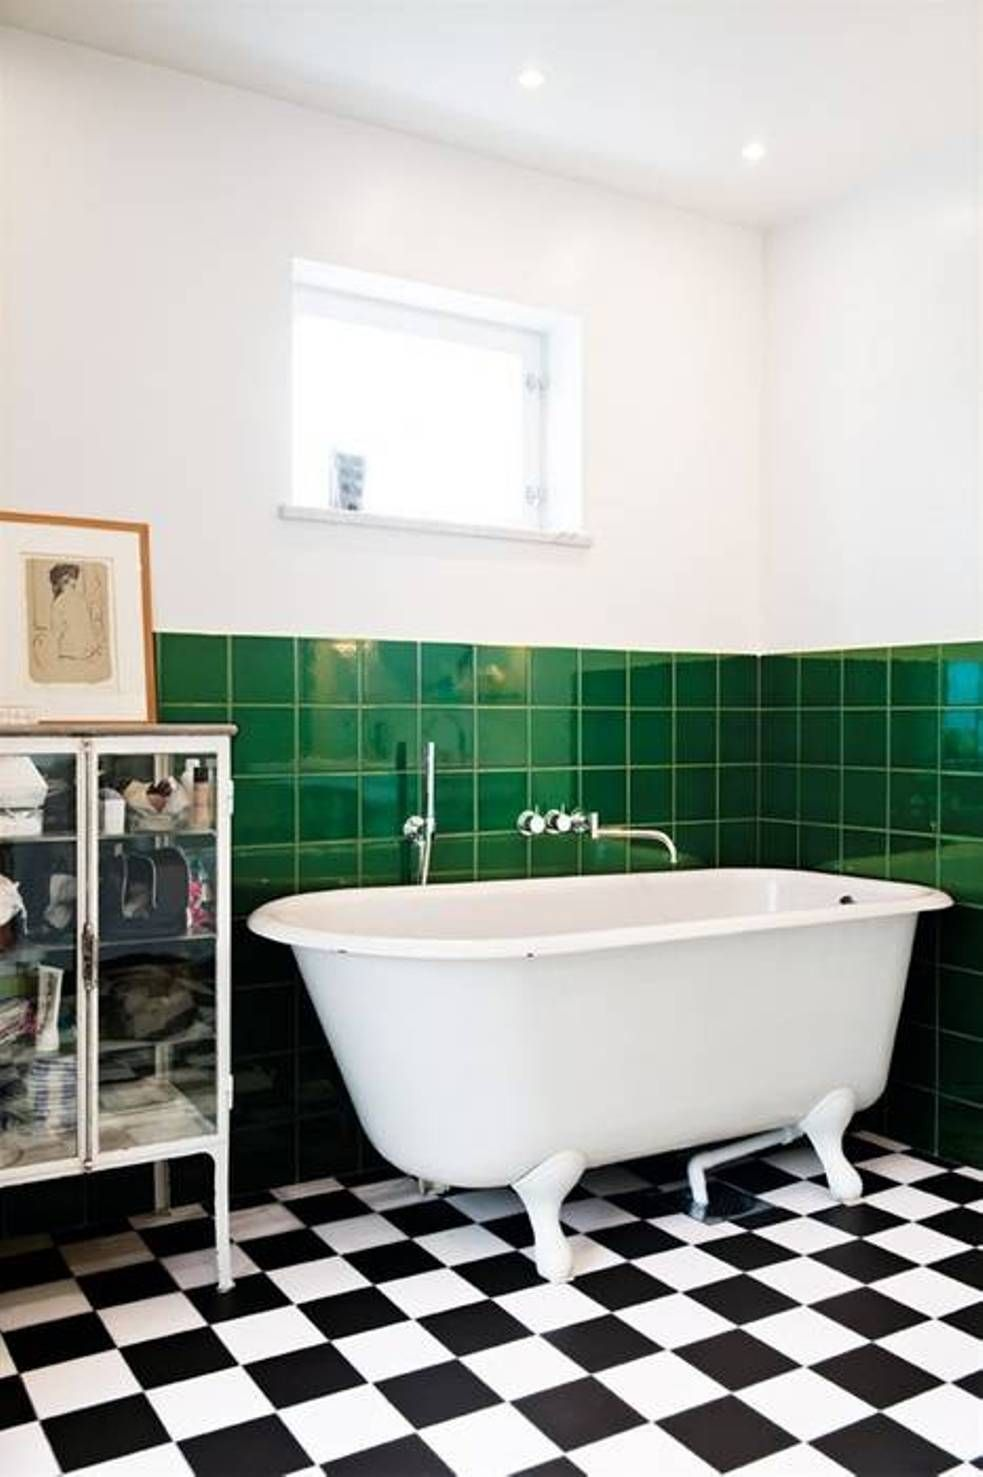 bathroom soothing scandinavian bathroom designs scandinavian most popular tags for this image include tiles bathtub black and white decor and floor